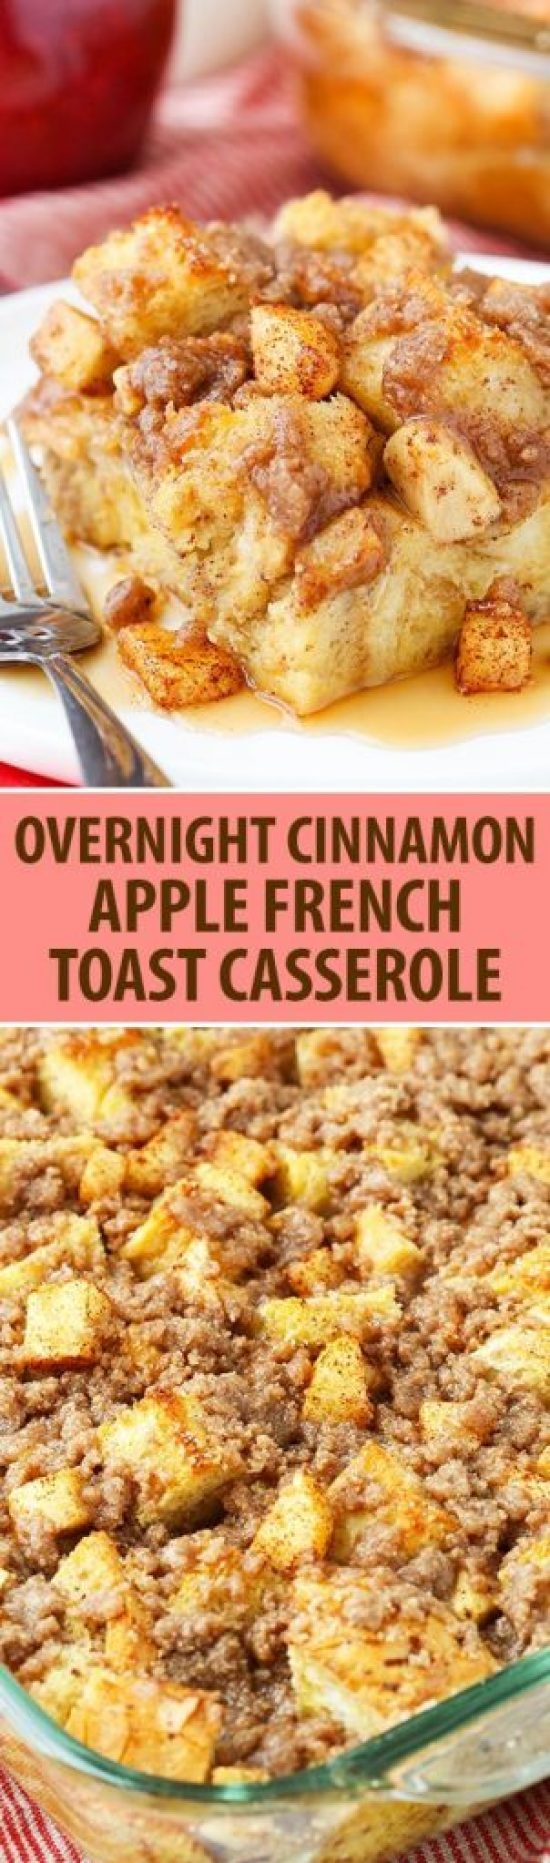 Overnight Cinnamon Apple Baked French Toast Casserole Recipe | Life Love and Sugar